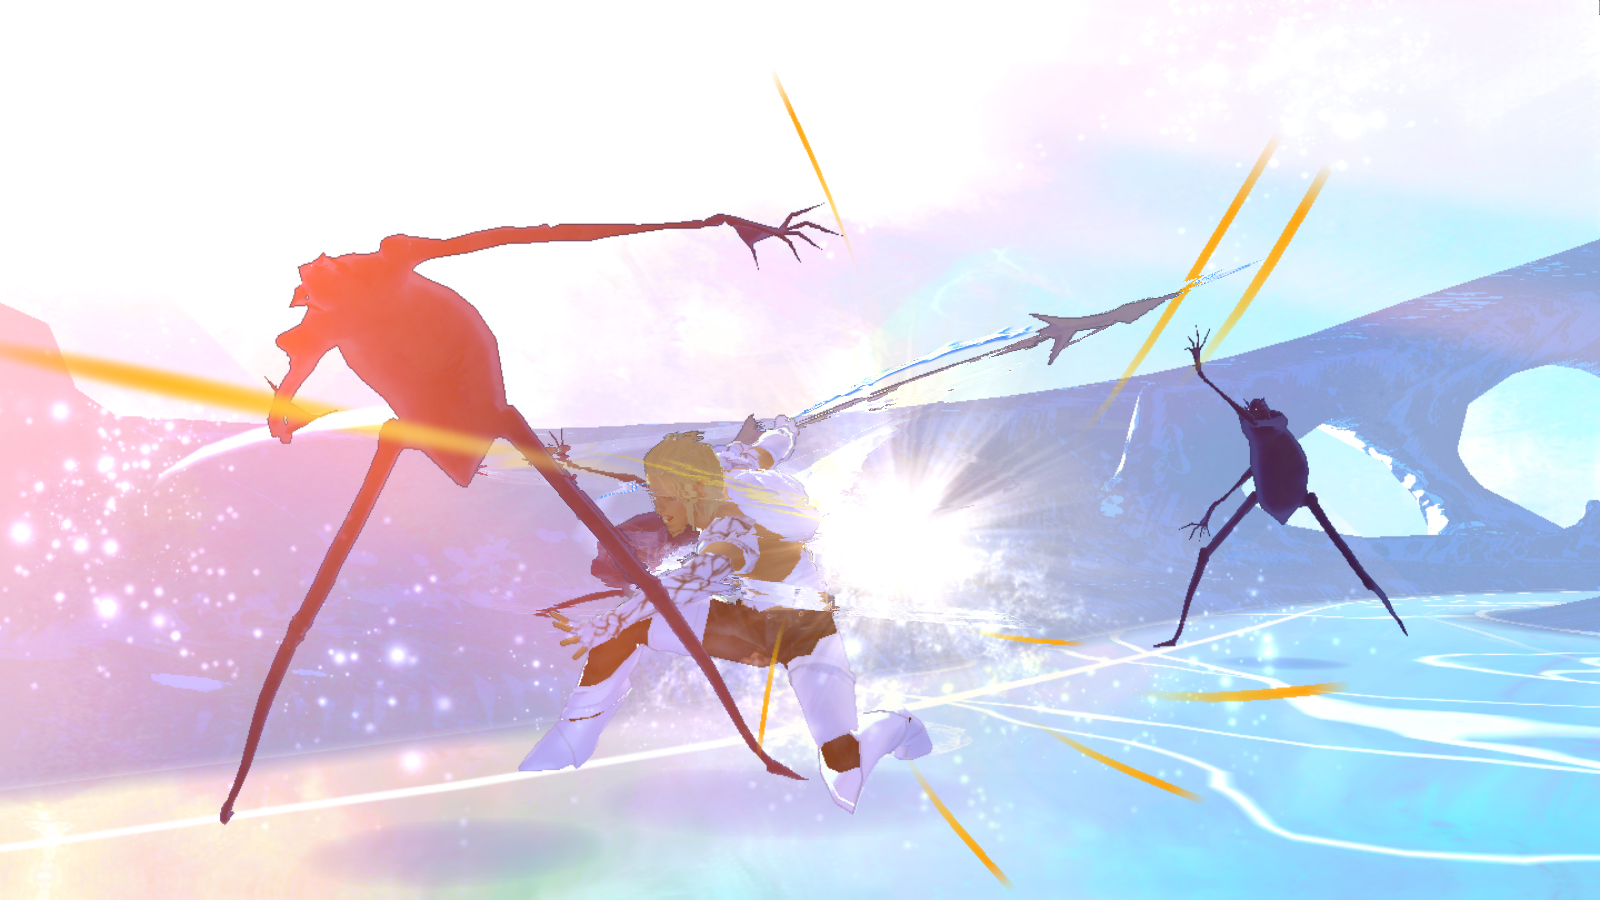 El Shaddai : Ascension of the Metatron Playstation 3 | 25